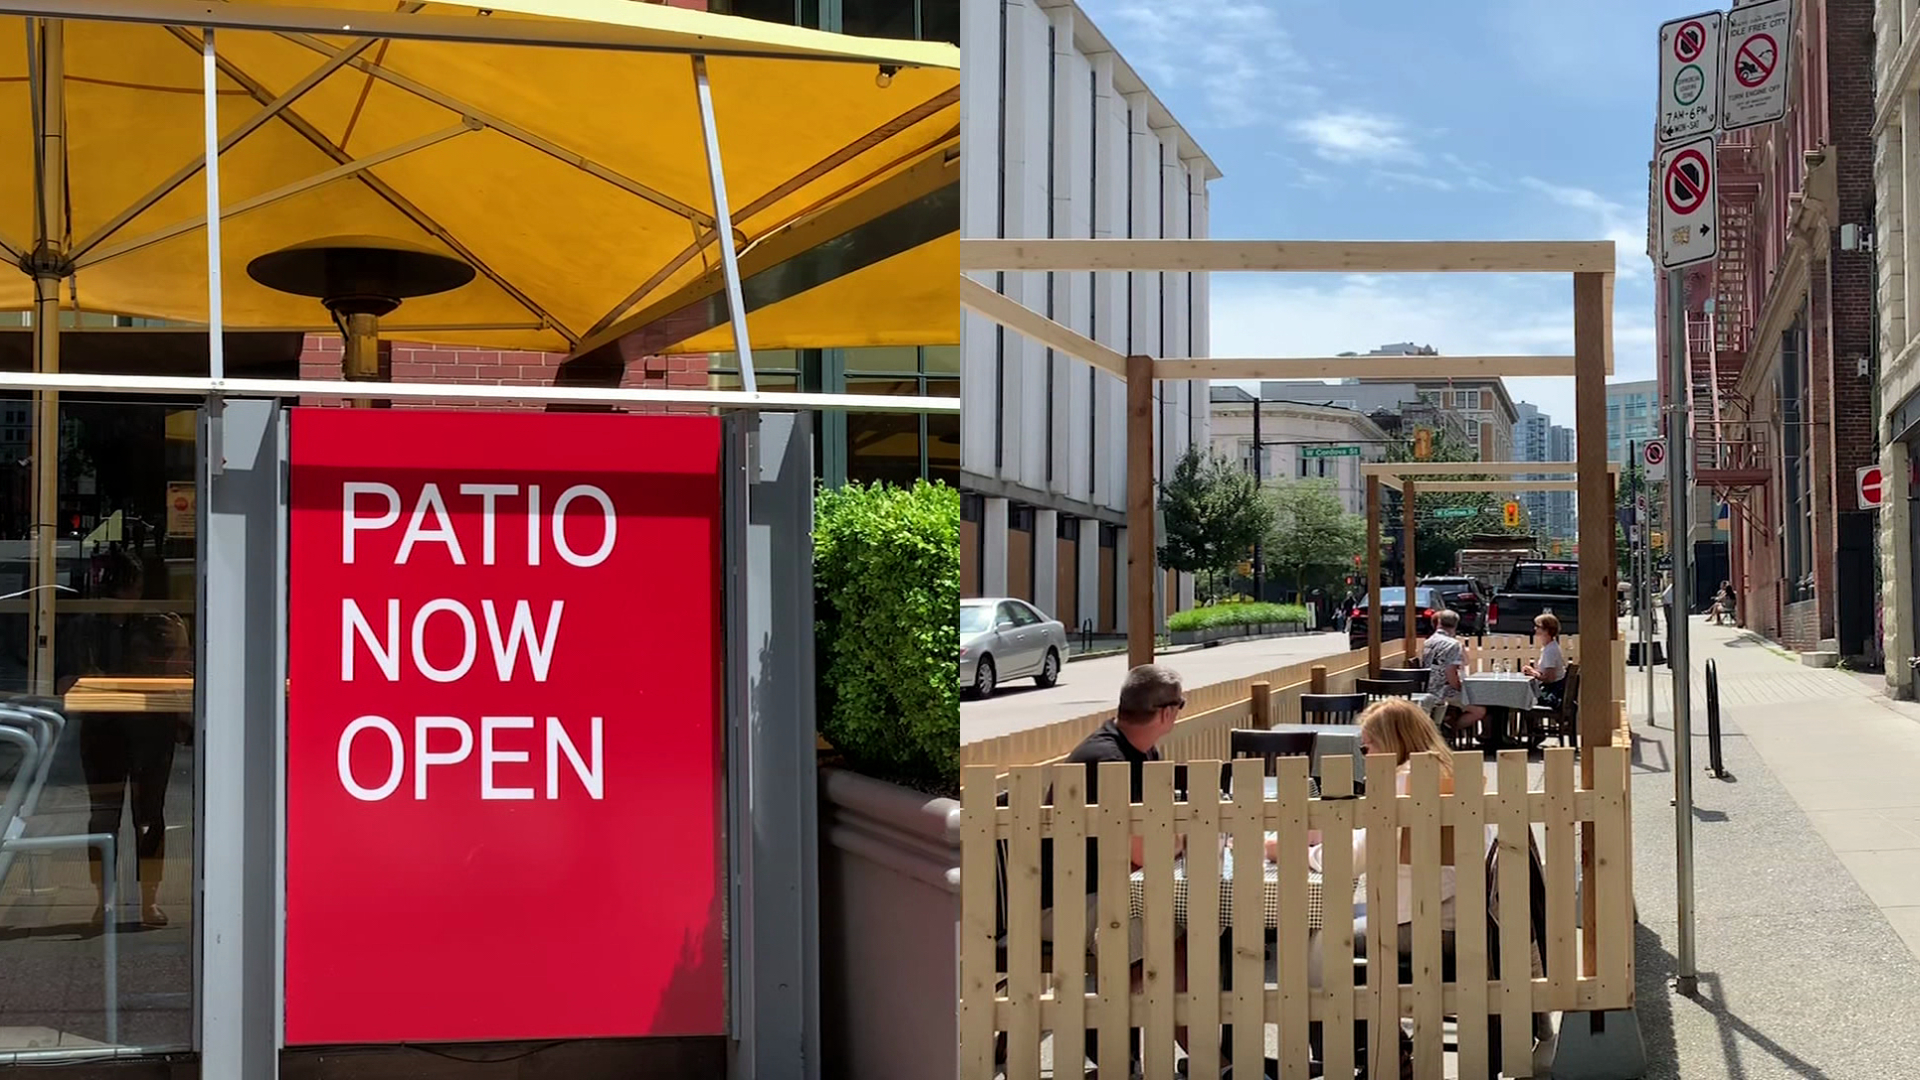 Vancouver's Gastown to be transformed into 'Patiotown' to draw more diners amid coronavirus - NEWS 1130